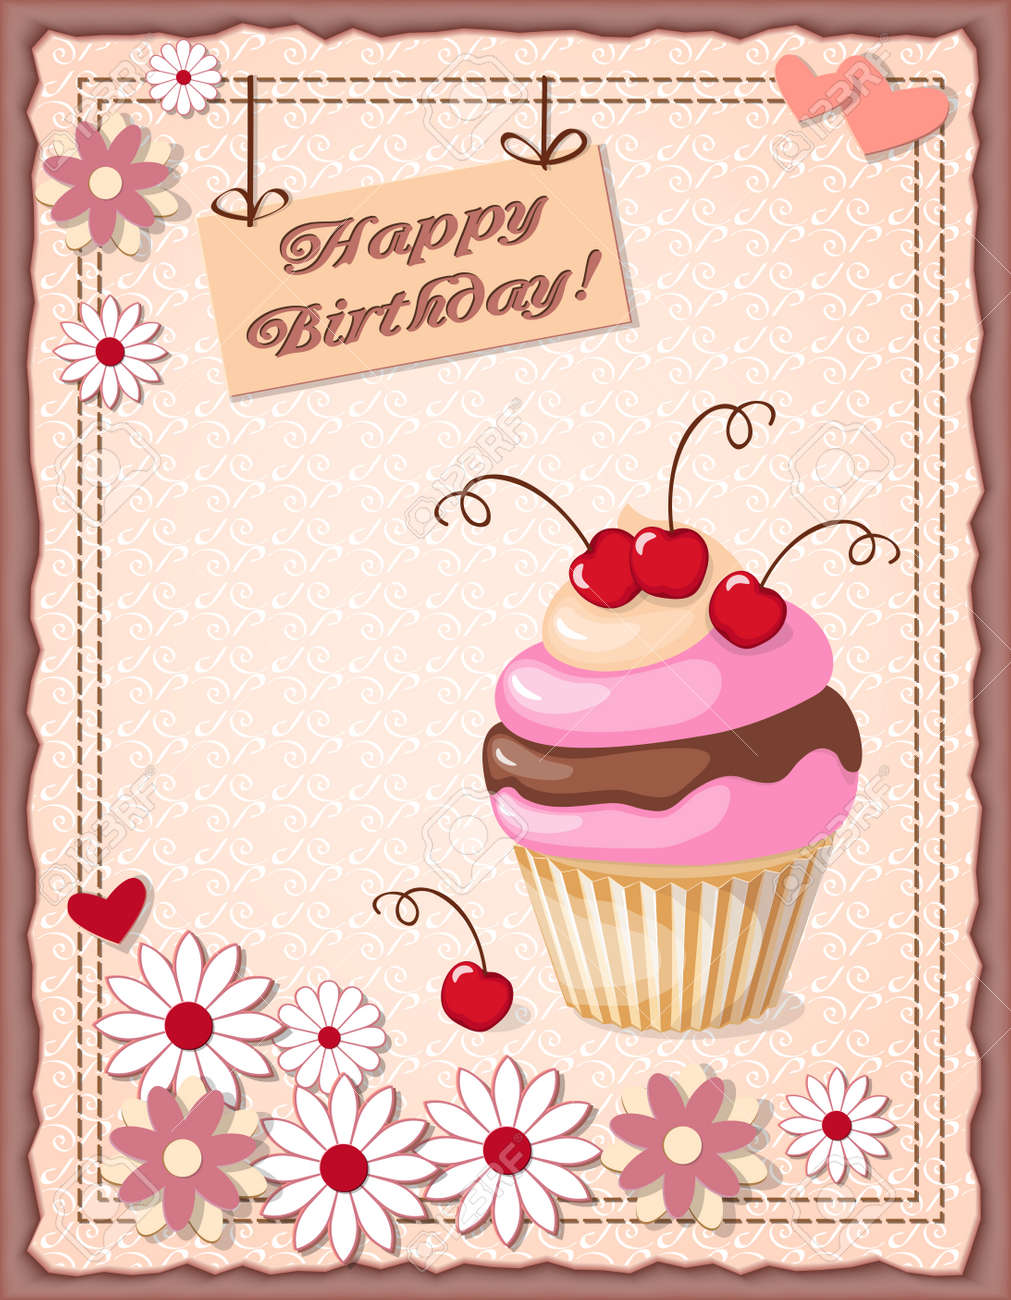 Fine Festive Colorful Scrapbooking Card With Text Happy Birthday Funny Birthday Cards Online Alyptdamsfinfo